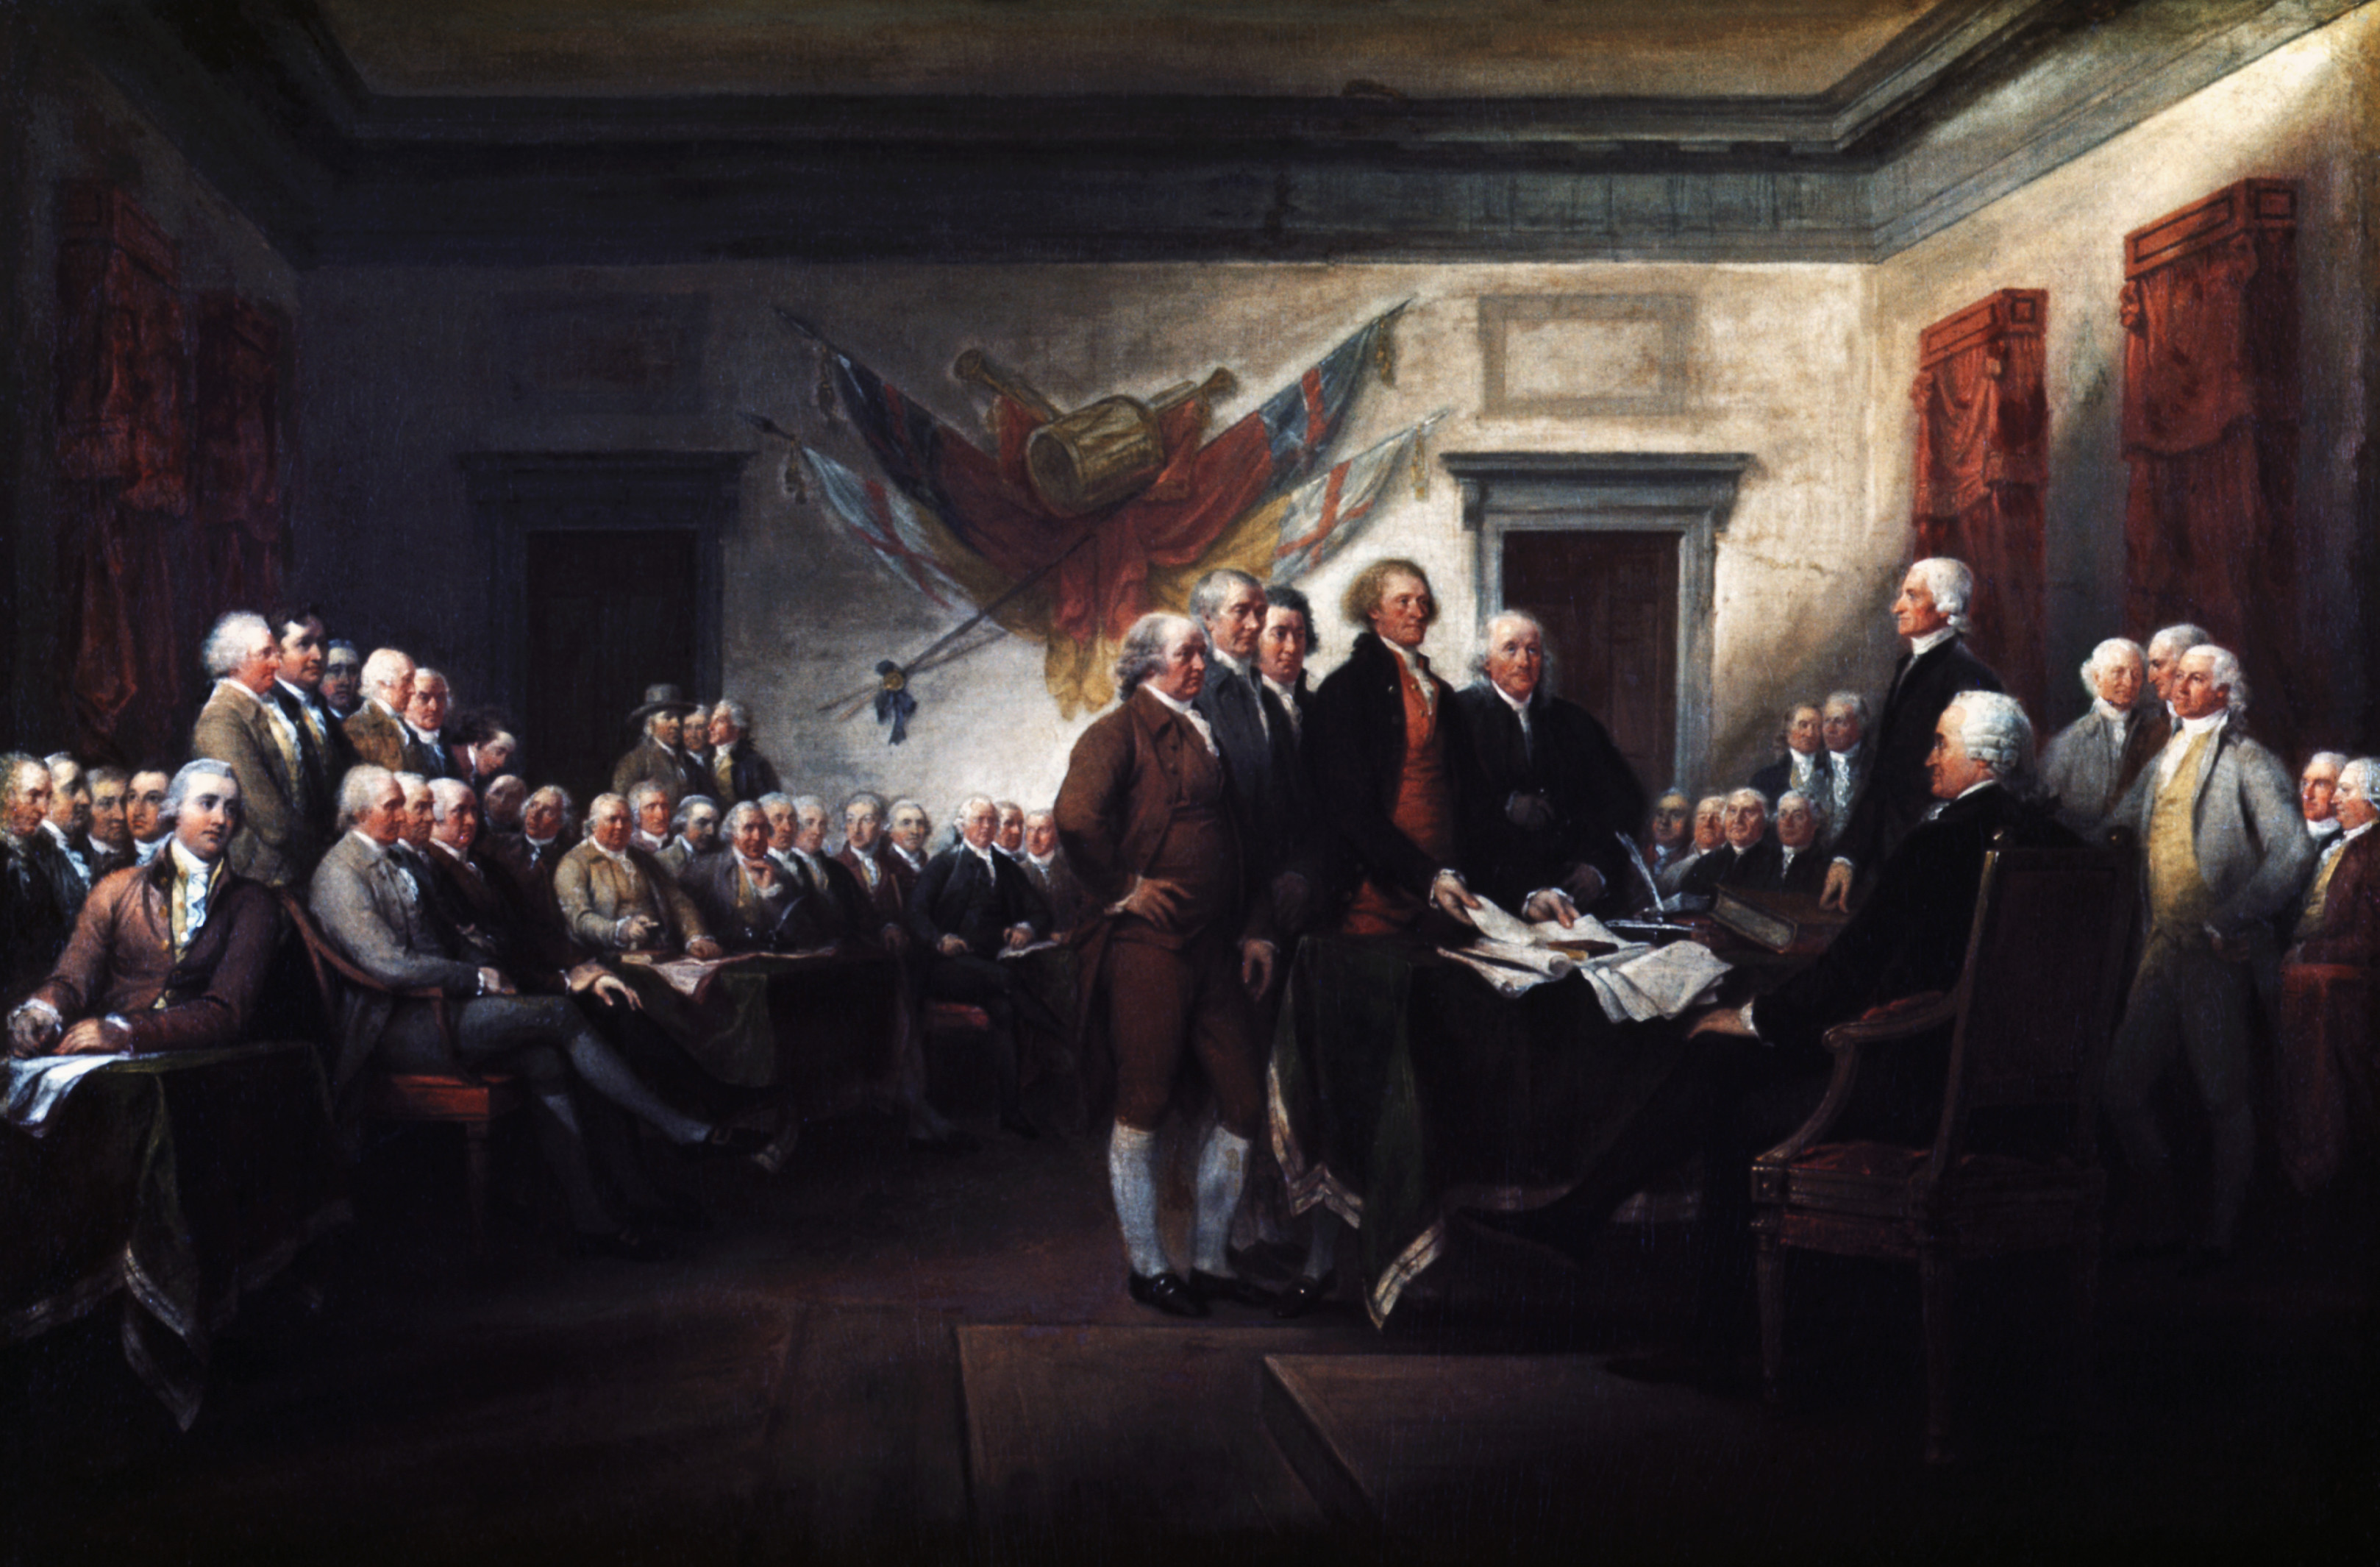 america has not been living up to the five ideals expressed in the declaration of independence